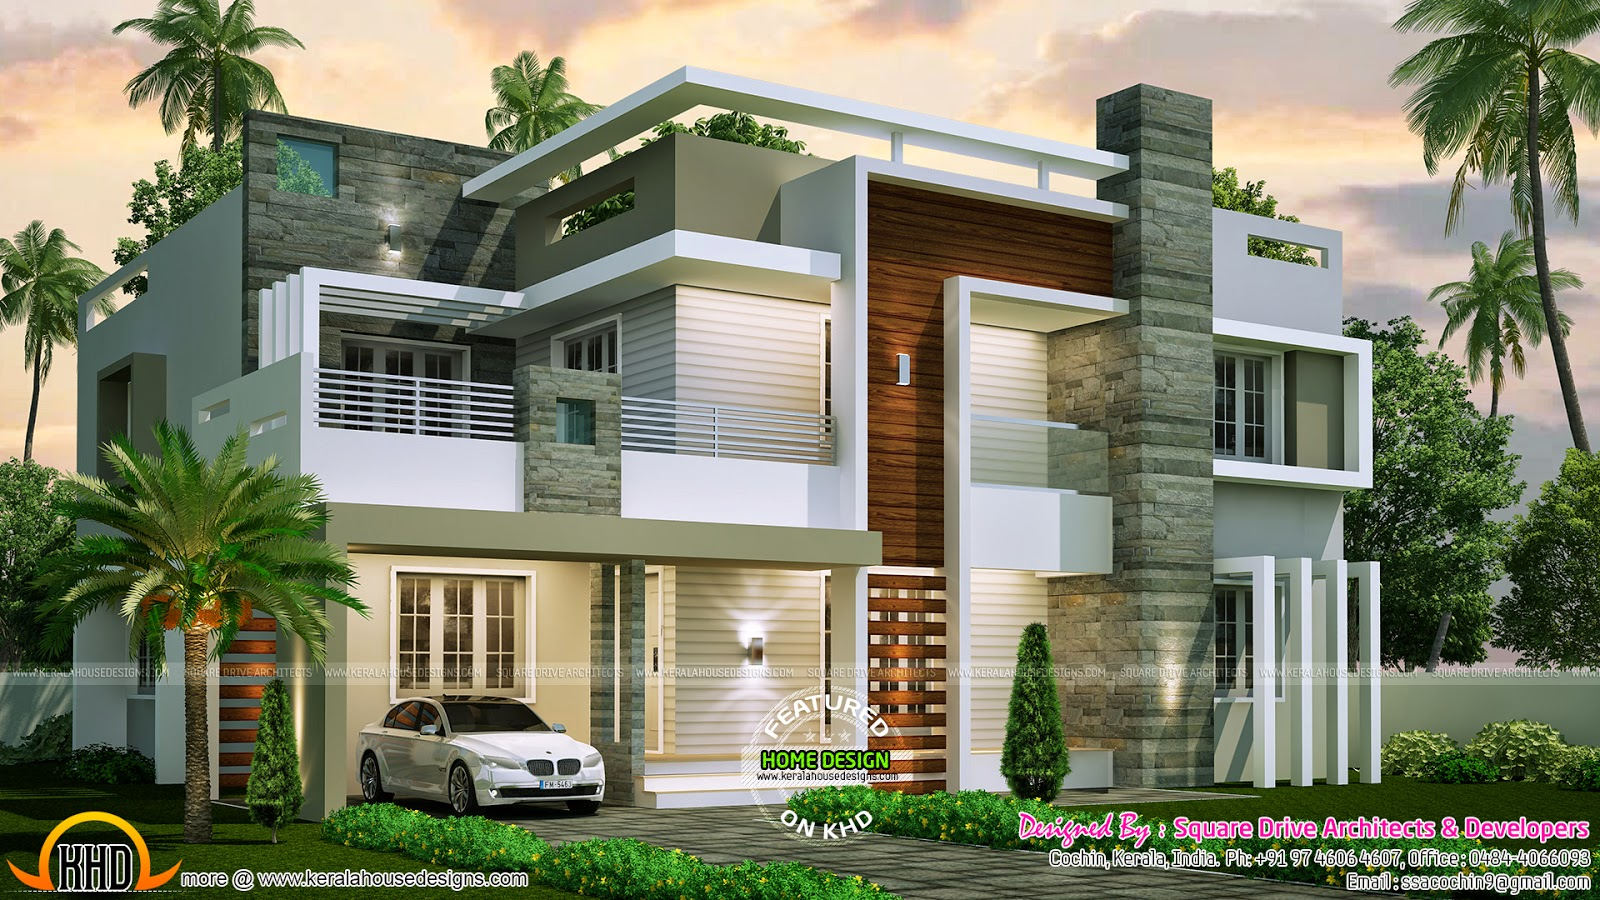 4 bedroom contemporary home design kerala home design for Home plans and designs